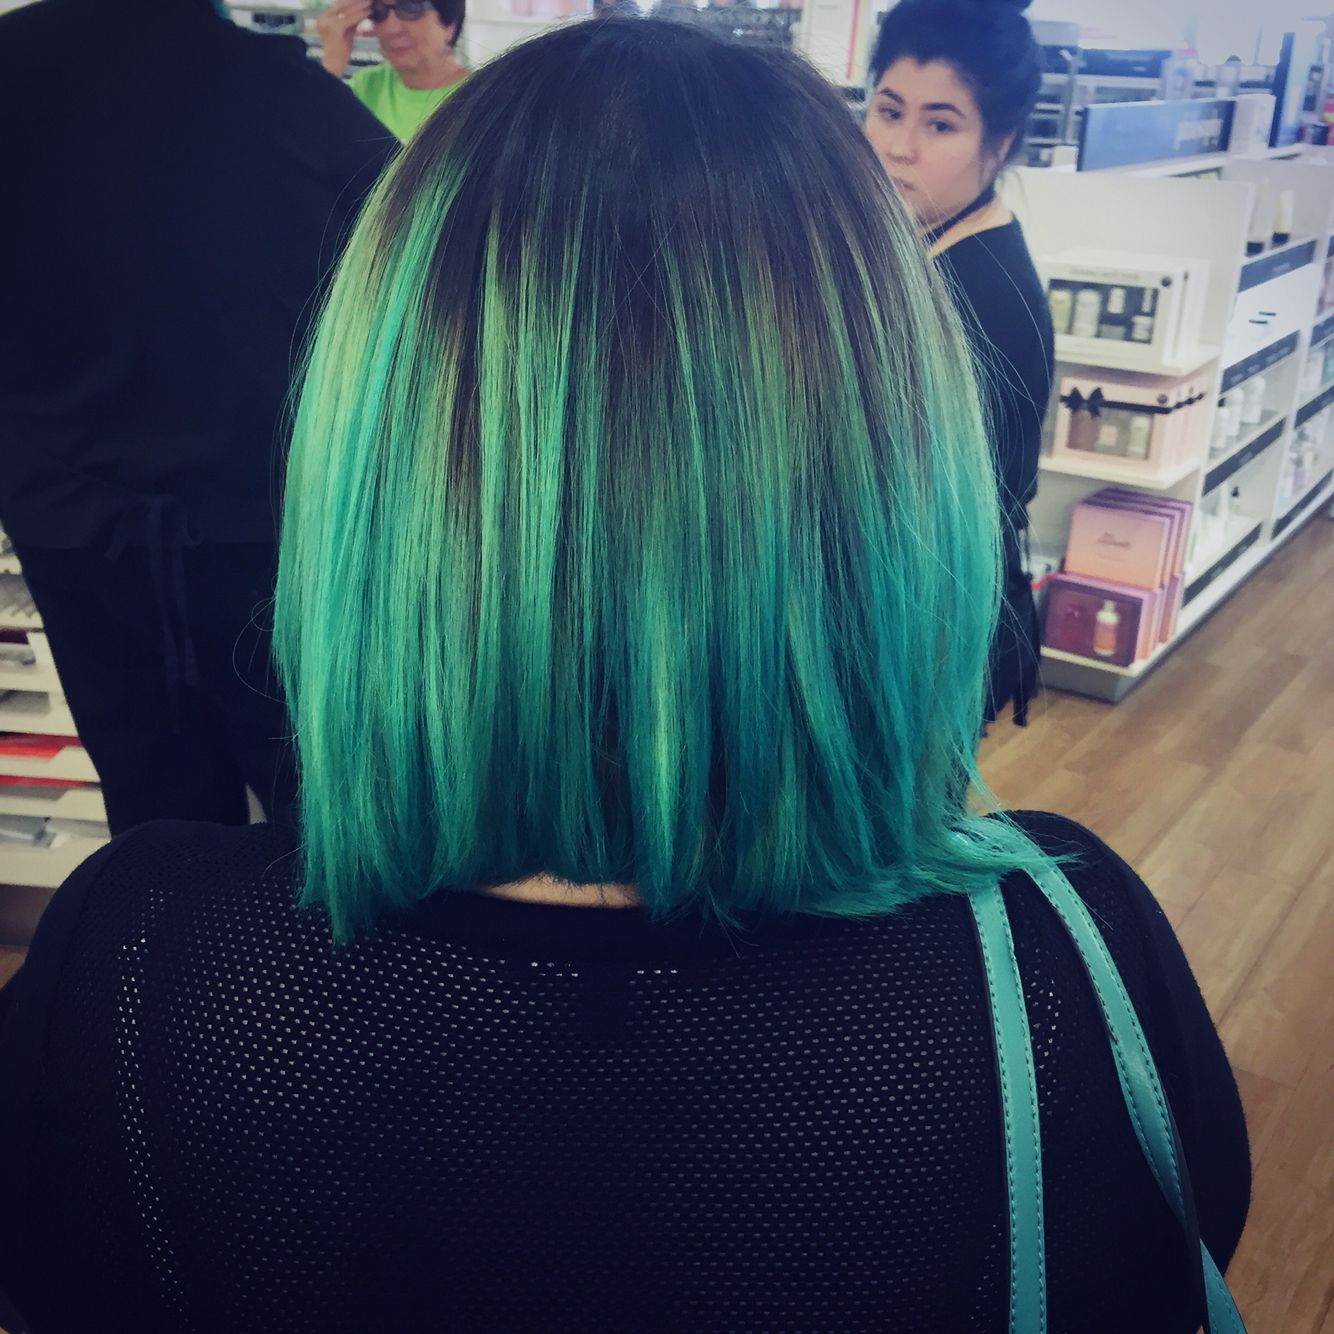 Ombré teal! Love this look!